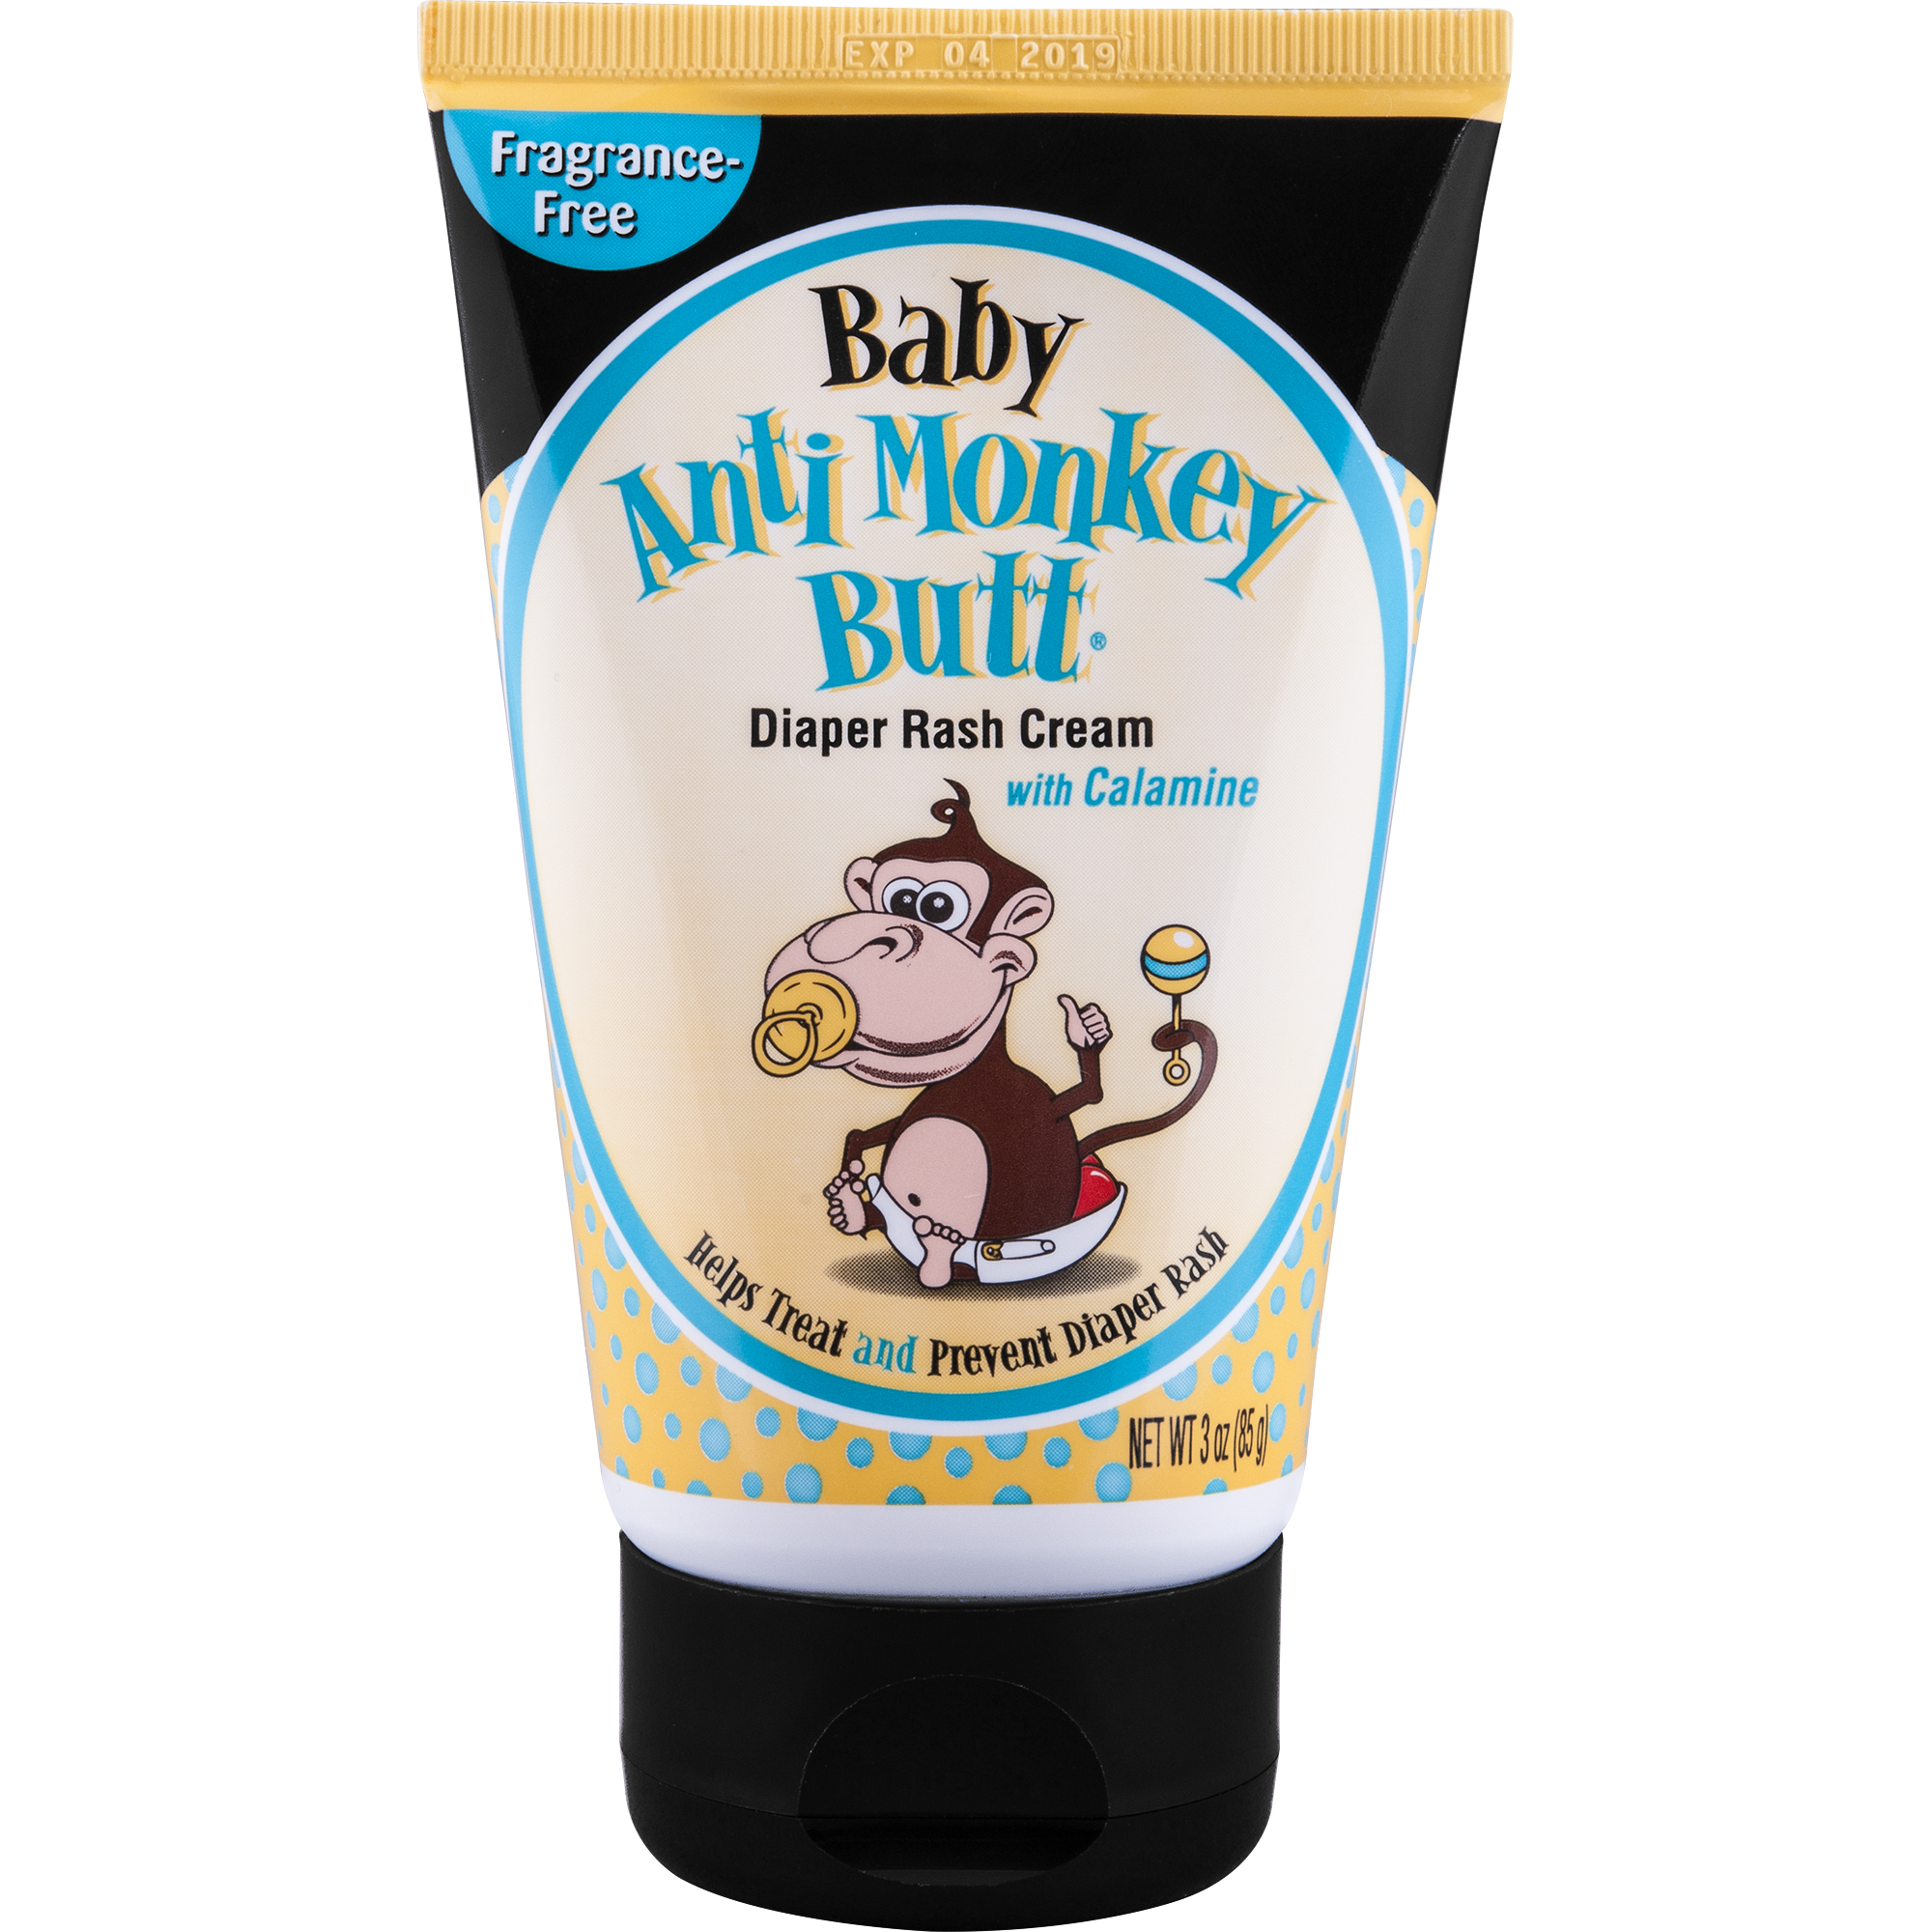 Anti Monkey Butt Diaper Riash Cream 3 oz.